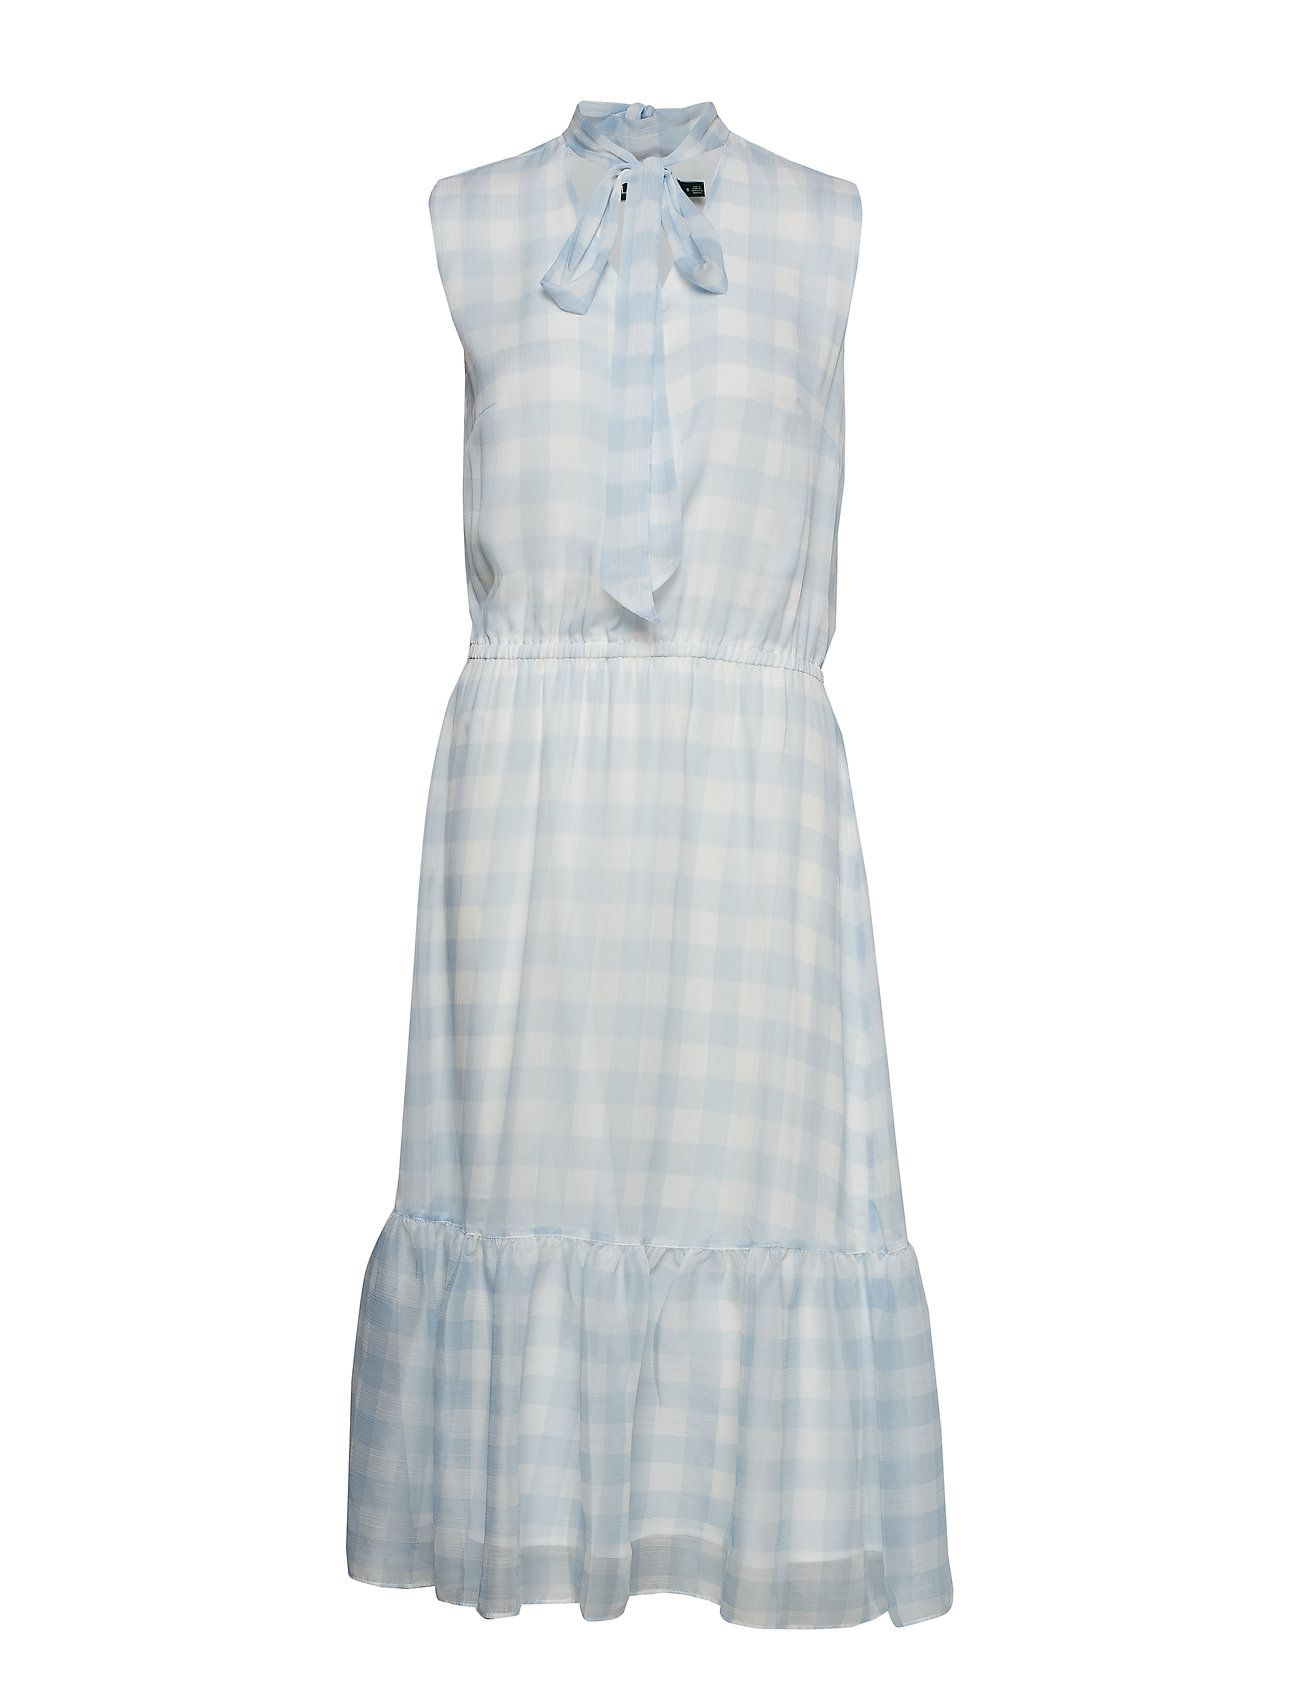 8dc24515 Gingham Tie-neck Dress (Silk White/englis) (£107.25) - Lauren Ralph ...